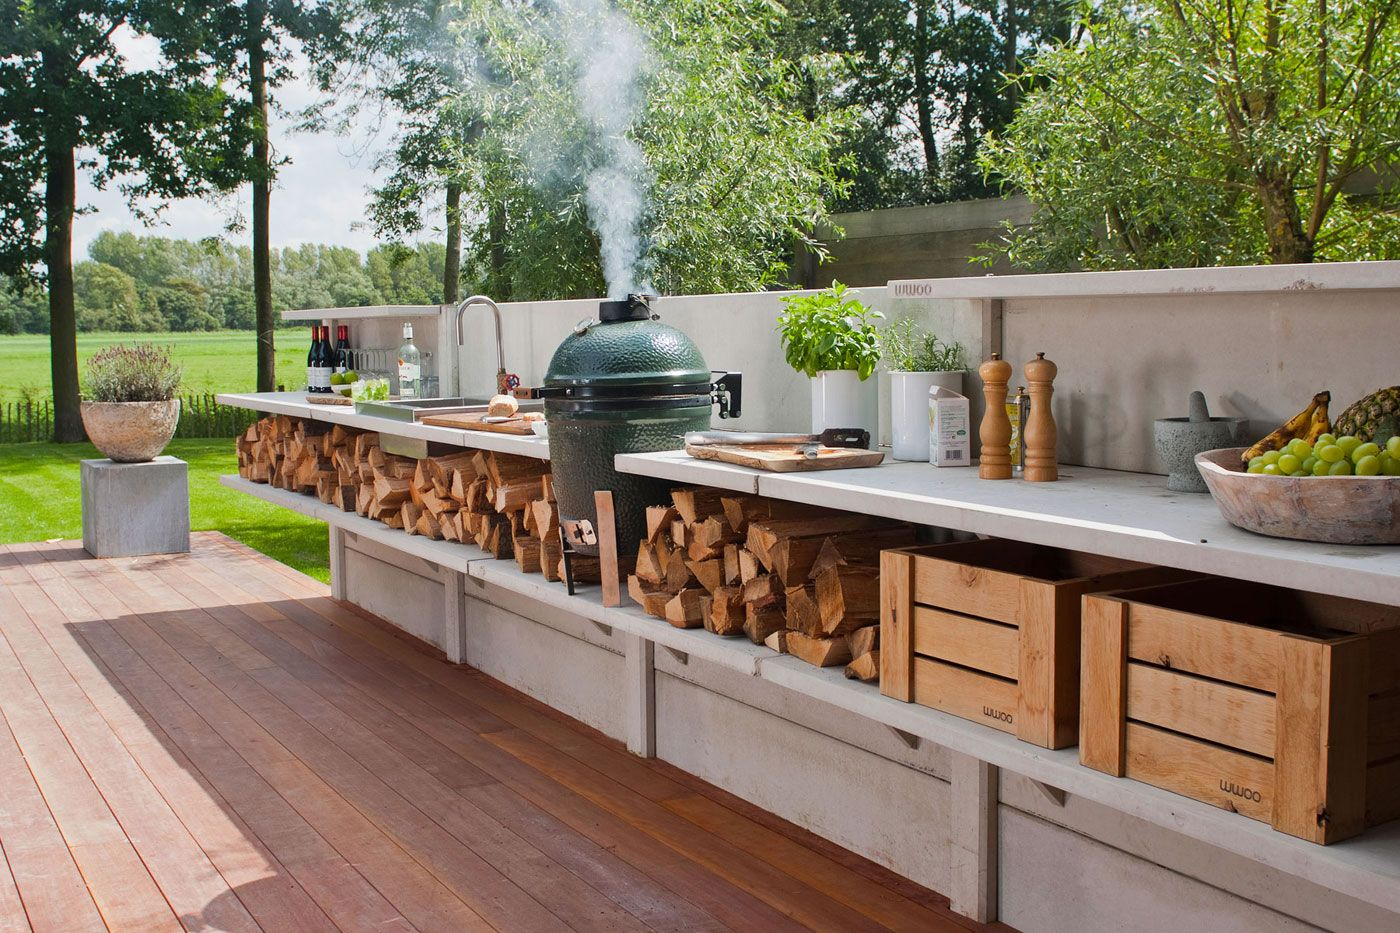 9 Best Outdoor Kitchen Ideas and Designs   Pictures of Beautiful ...